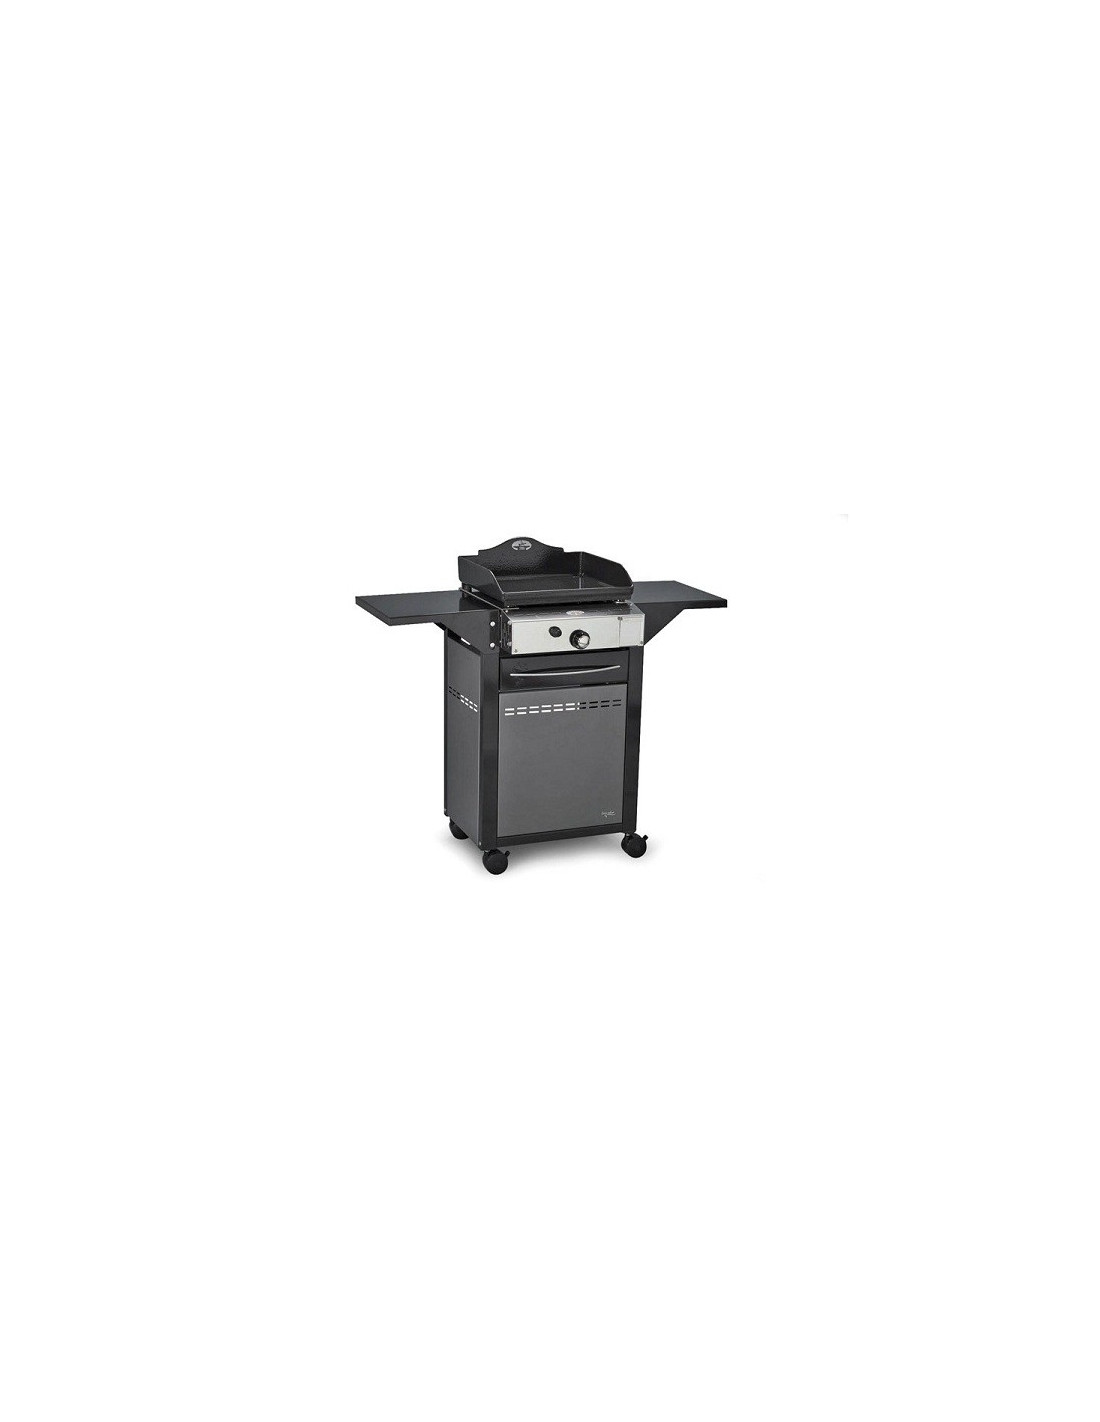 chariot plancha ferm en fer forge adour esprit barbecue. Black Bedroom Furniture Sets. Home Design Ideas